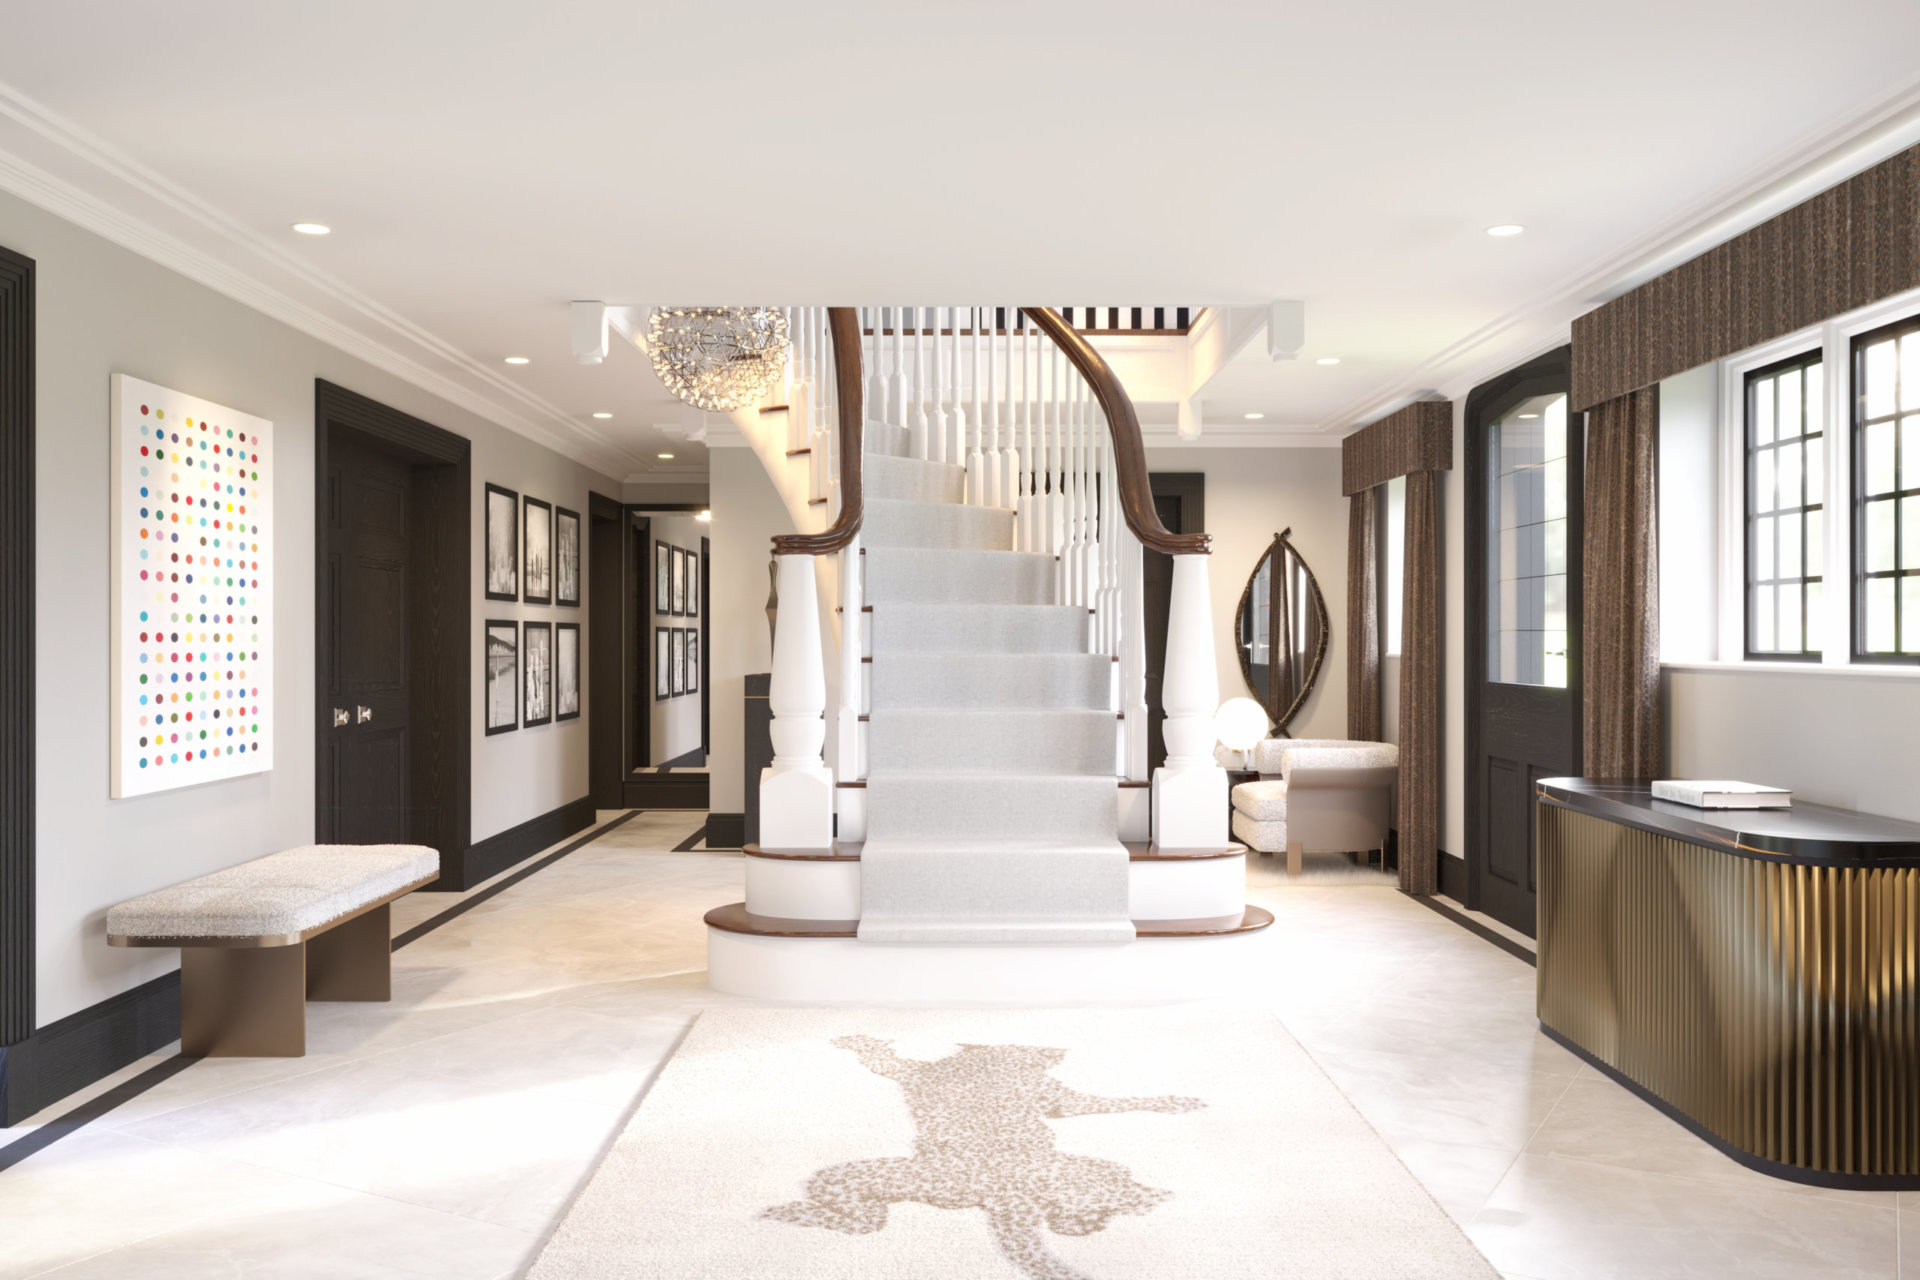 peter-staunton-interior-design-leamington-spa-warwickshire